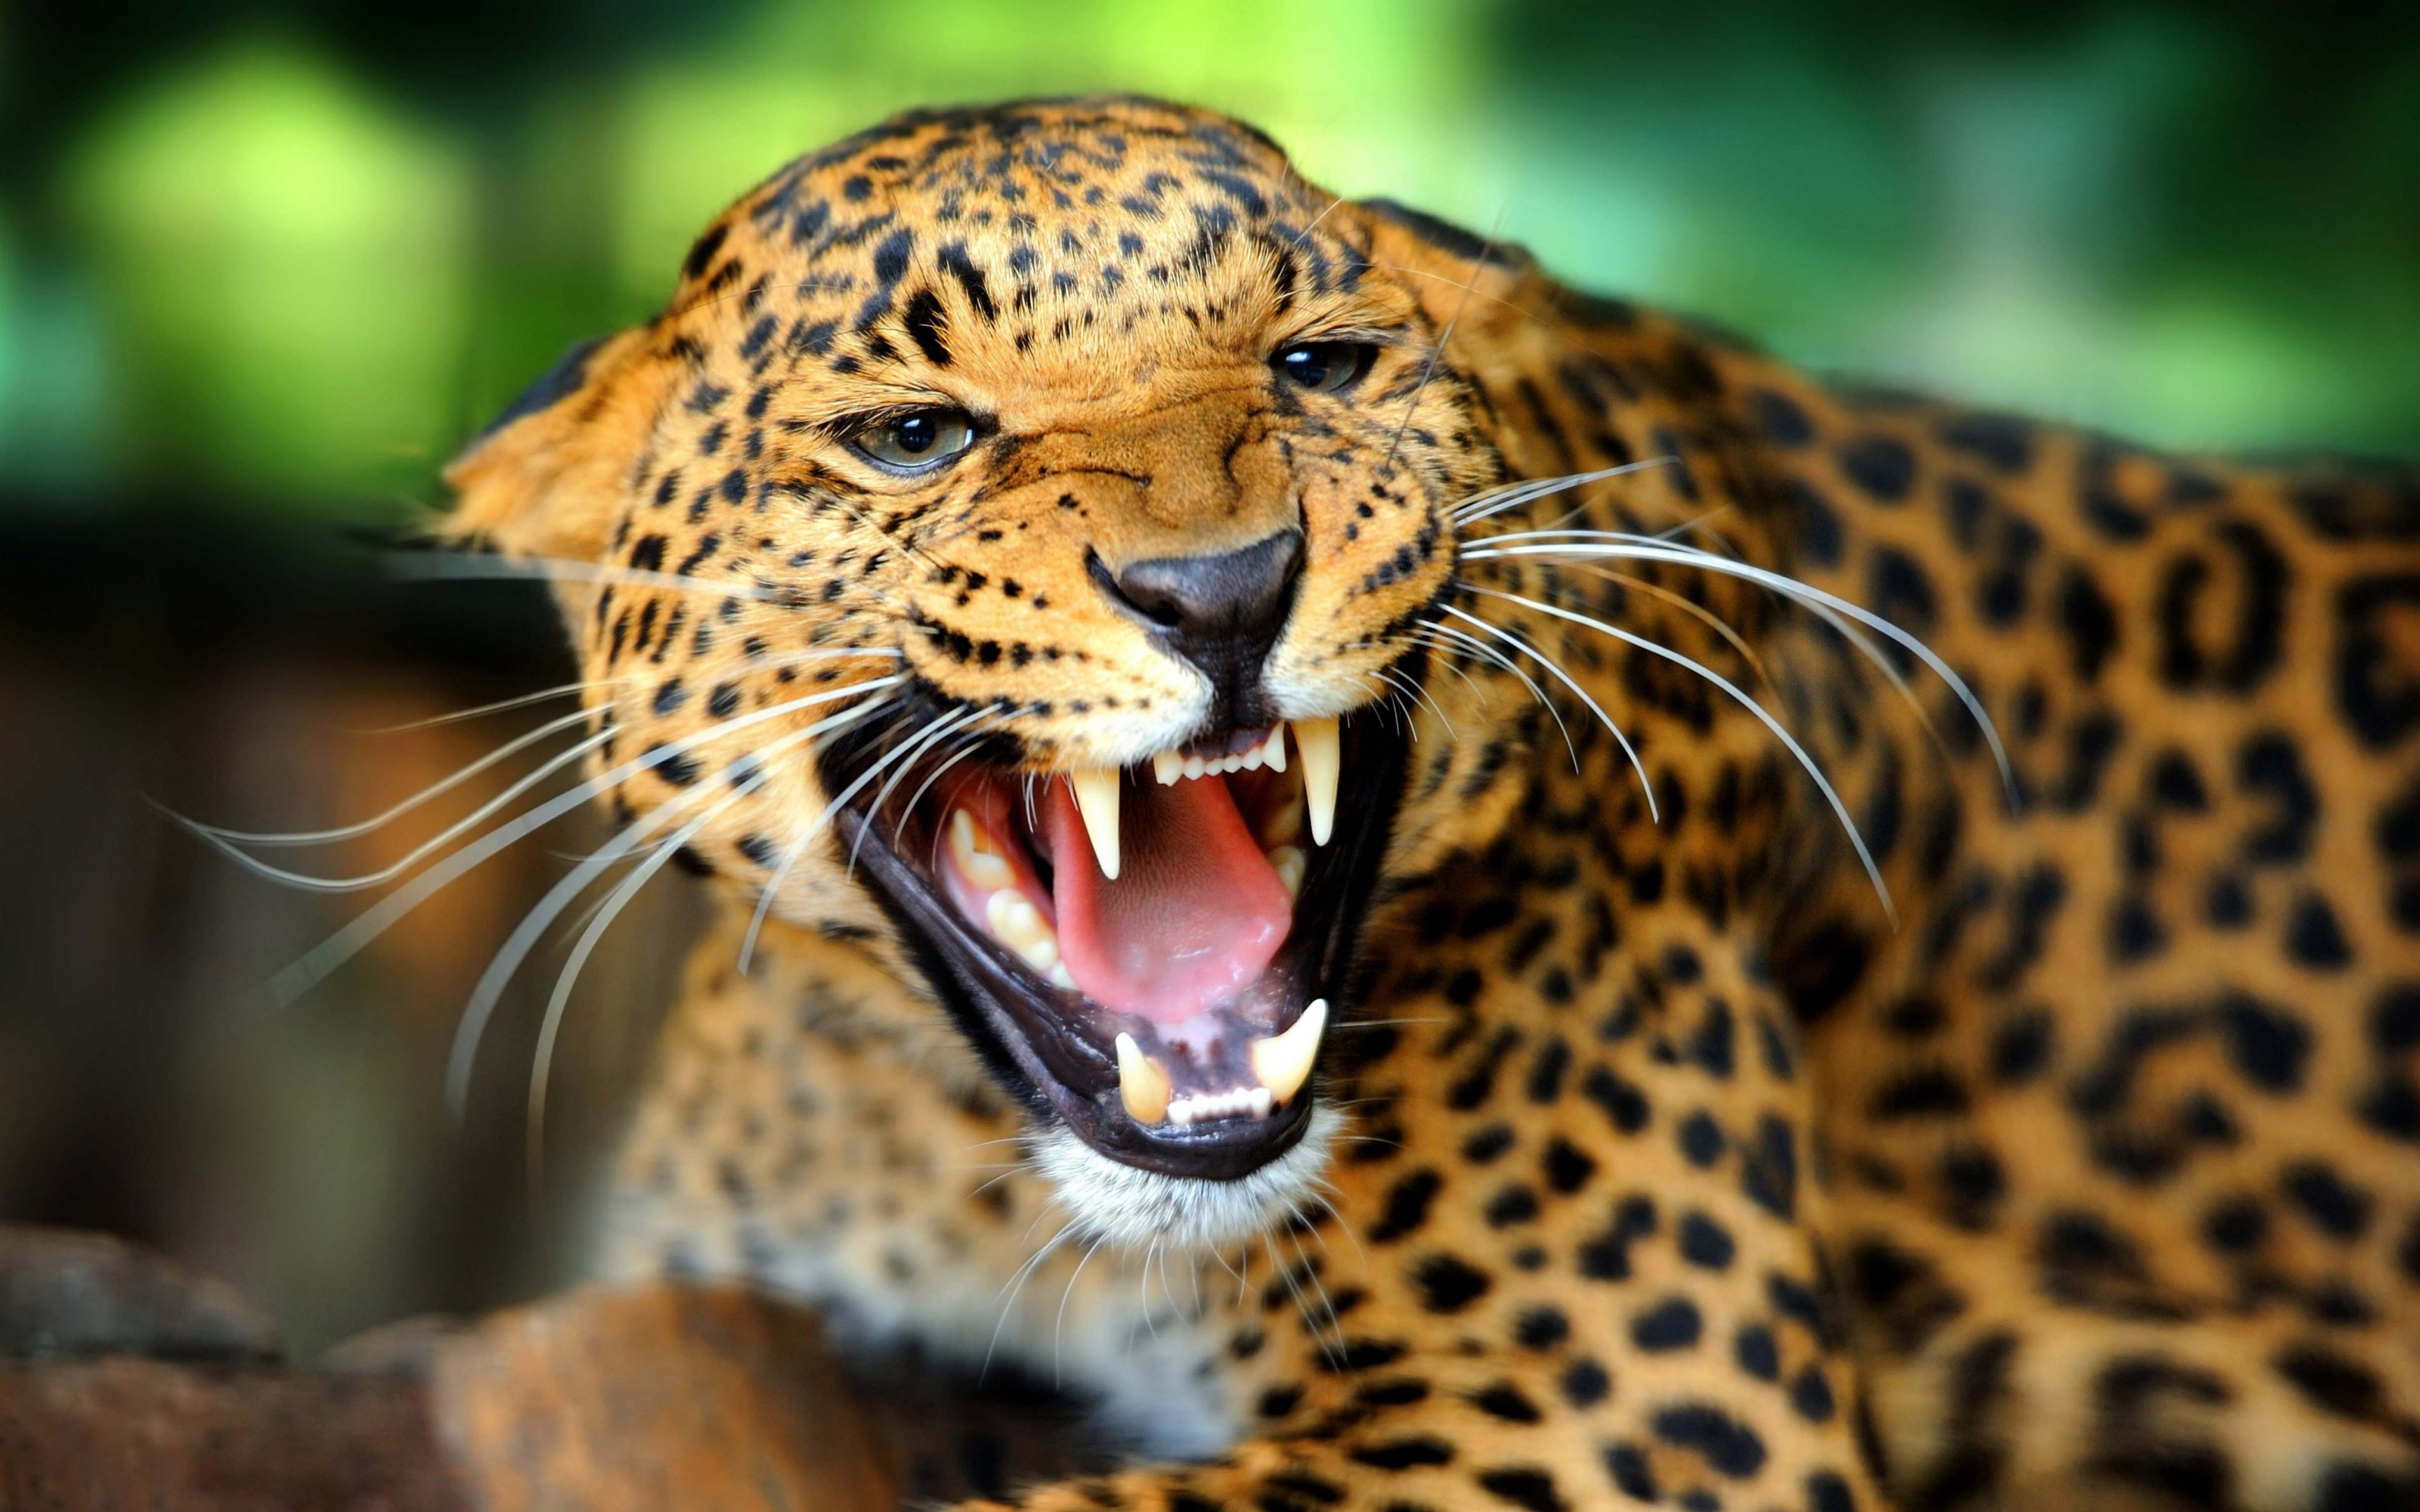 Download Leopard Wild Animal HD Wallpaper Search more Wild Animals 3840x2400